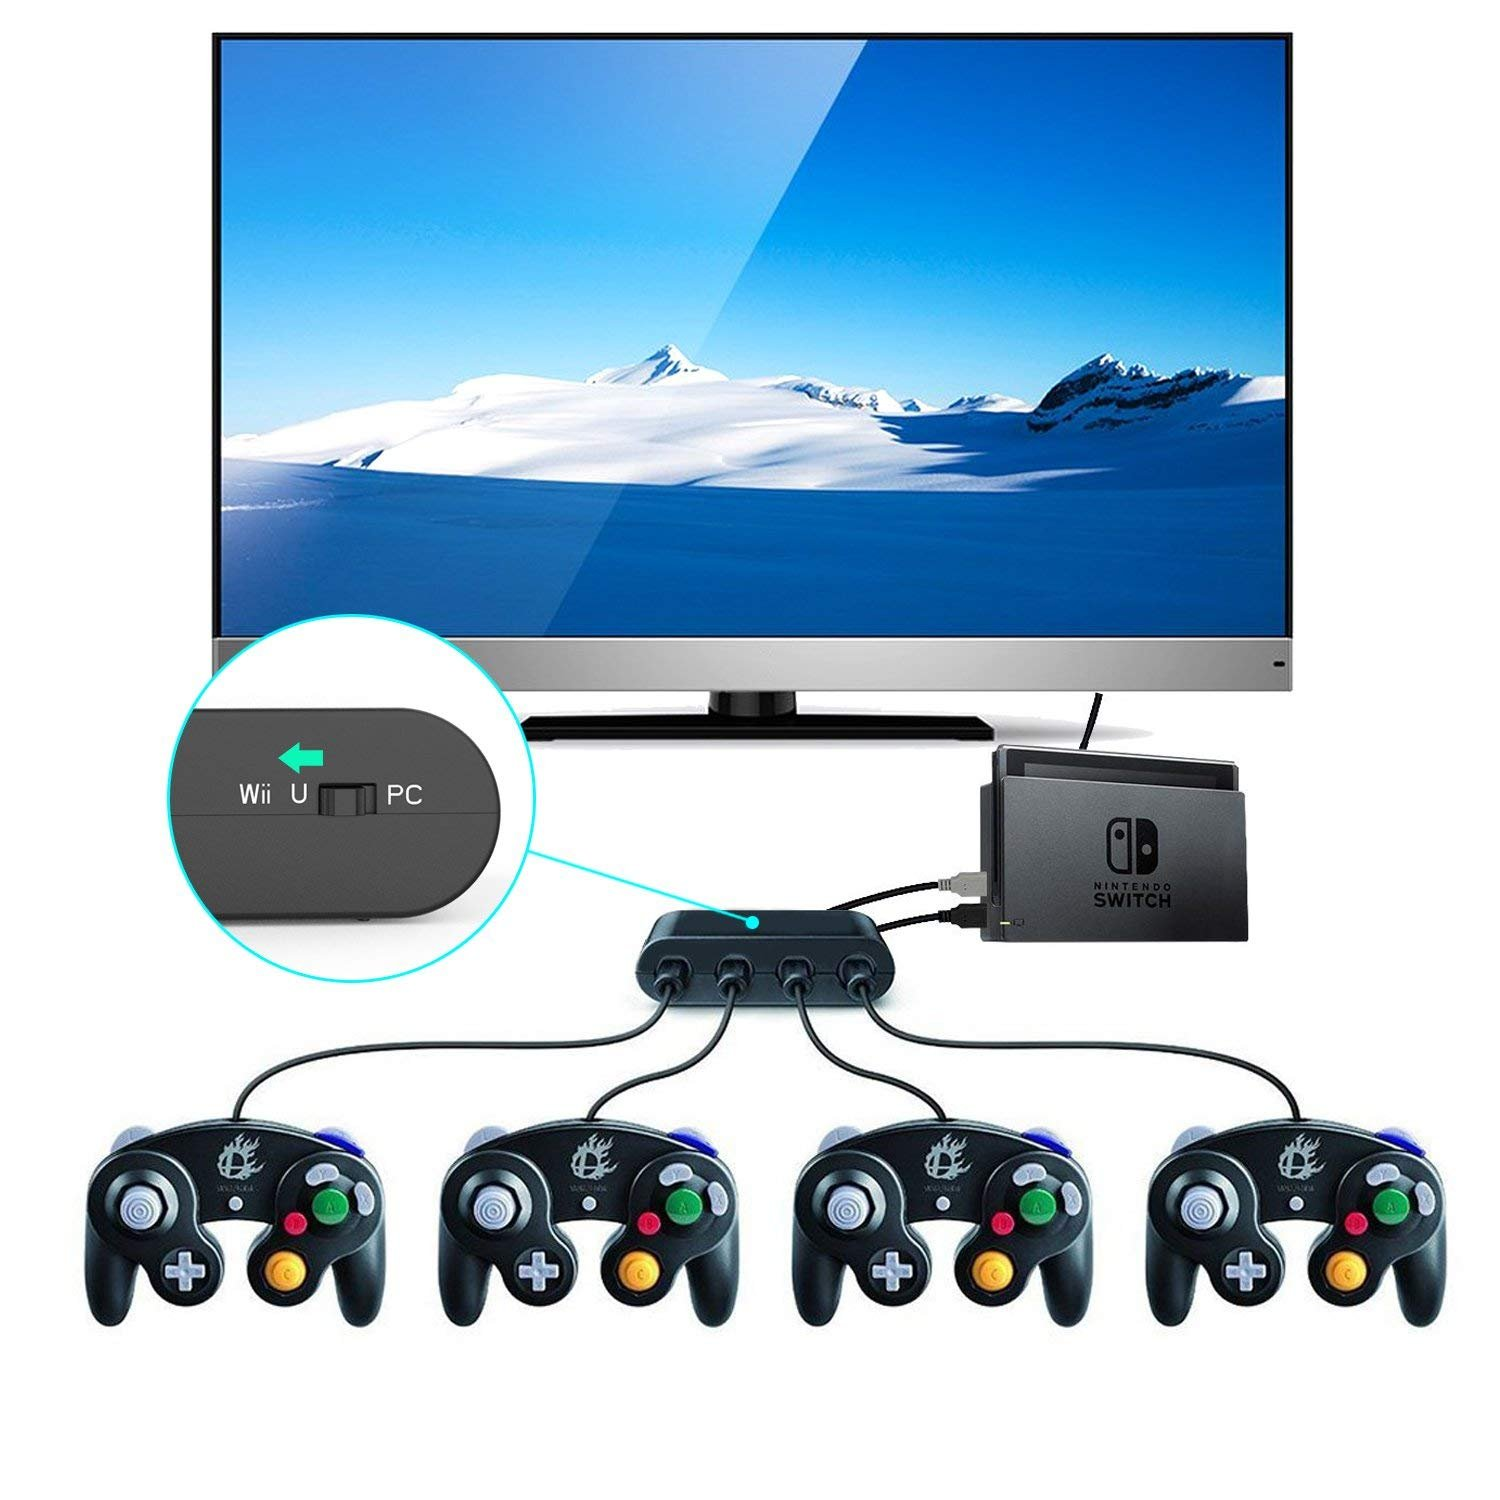 Gamecube Controller Adapter. Super Smash Bros Wii U Gamecube Adapter for Pc, Switch. No Driver Need and Easy to Use. 4 Port Black Gamecube Adapter(Improved Version) by Cloudream (Image #3)